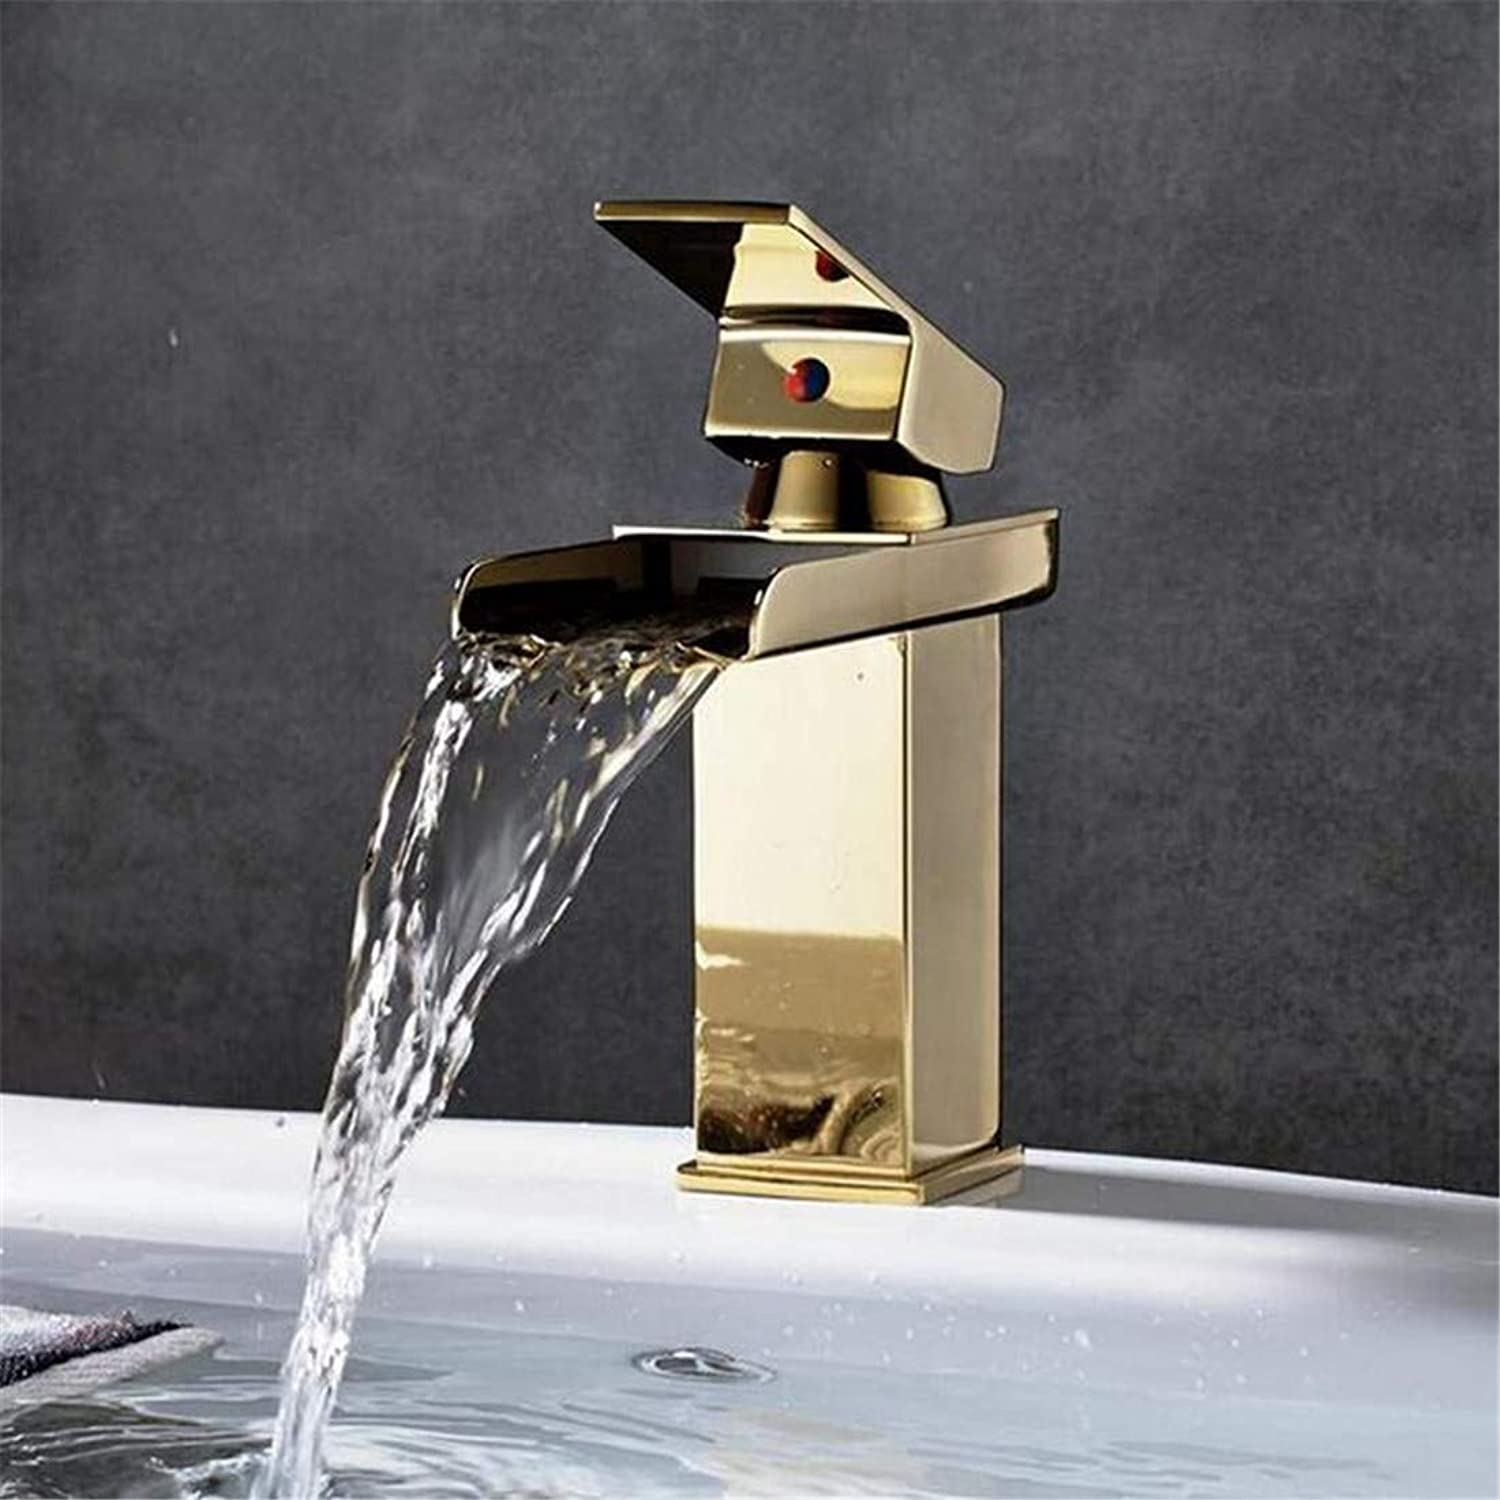 Faucet Luxury Plated Modern Faucet Faucet Washbasin Mixer Brass Bathroom Basin Faucet Waterfall Vanity Sink Mixer Tap Hot and Cold Water